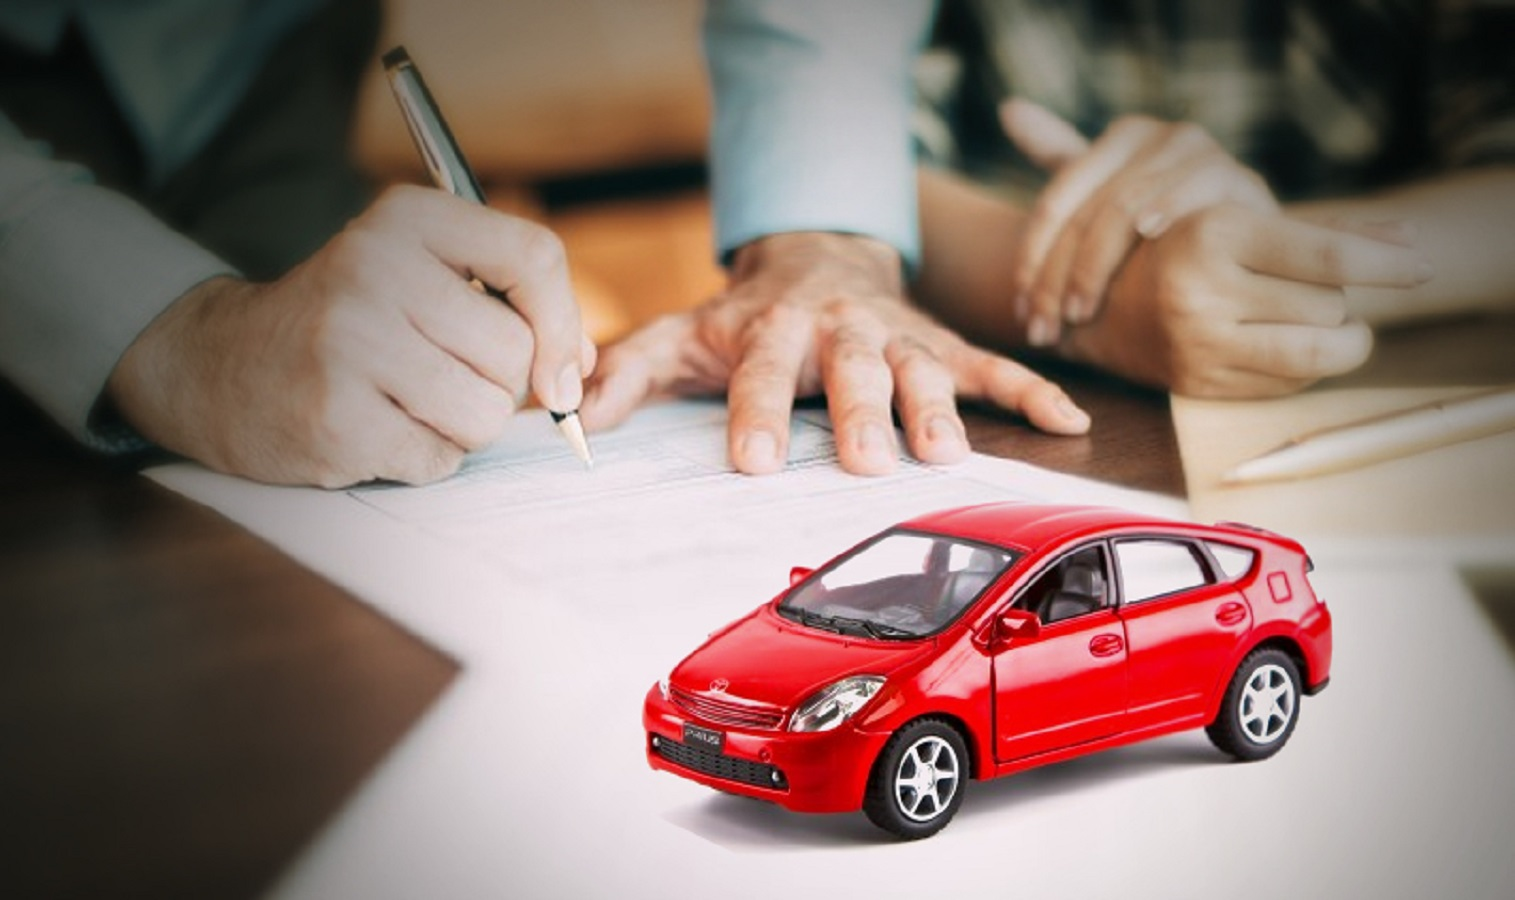 Toy car on a desk with paper work